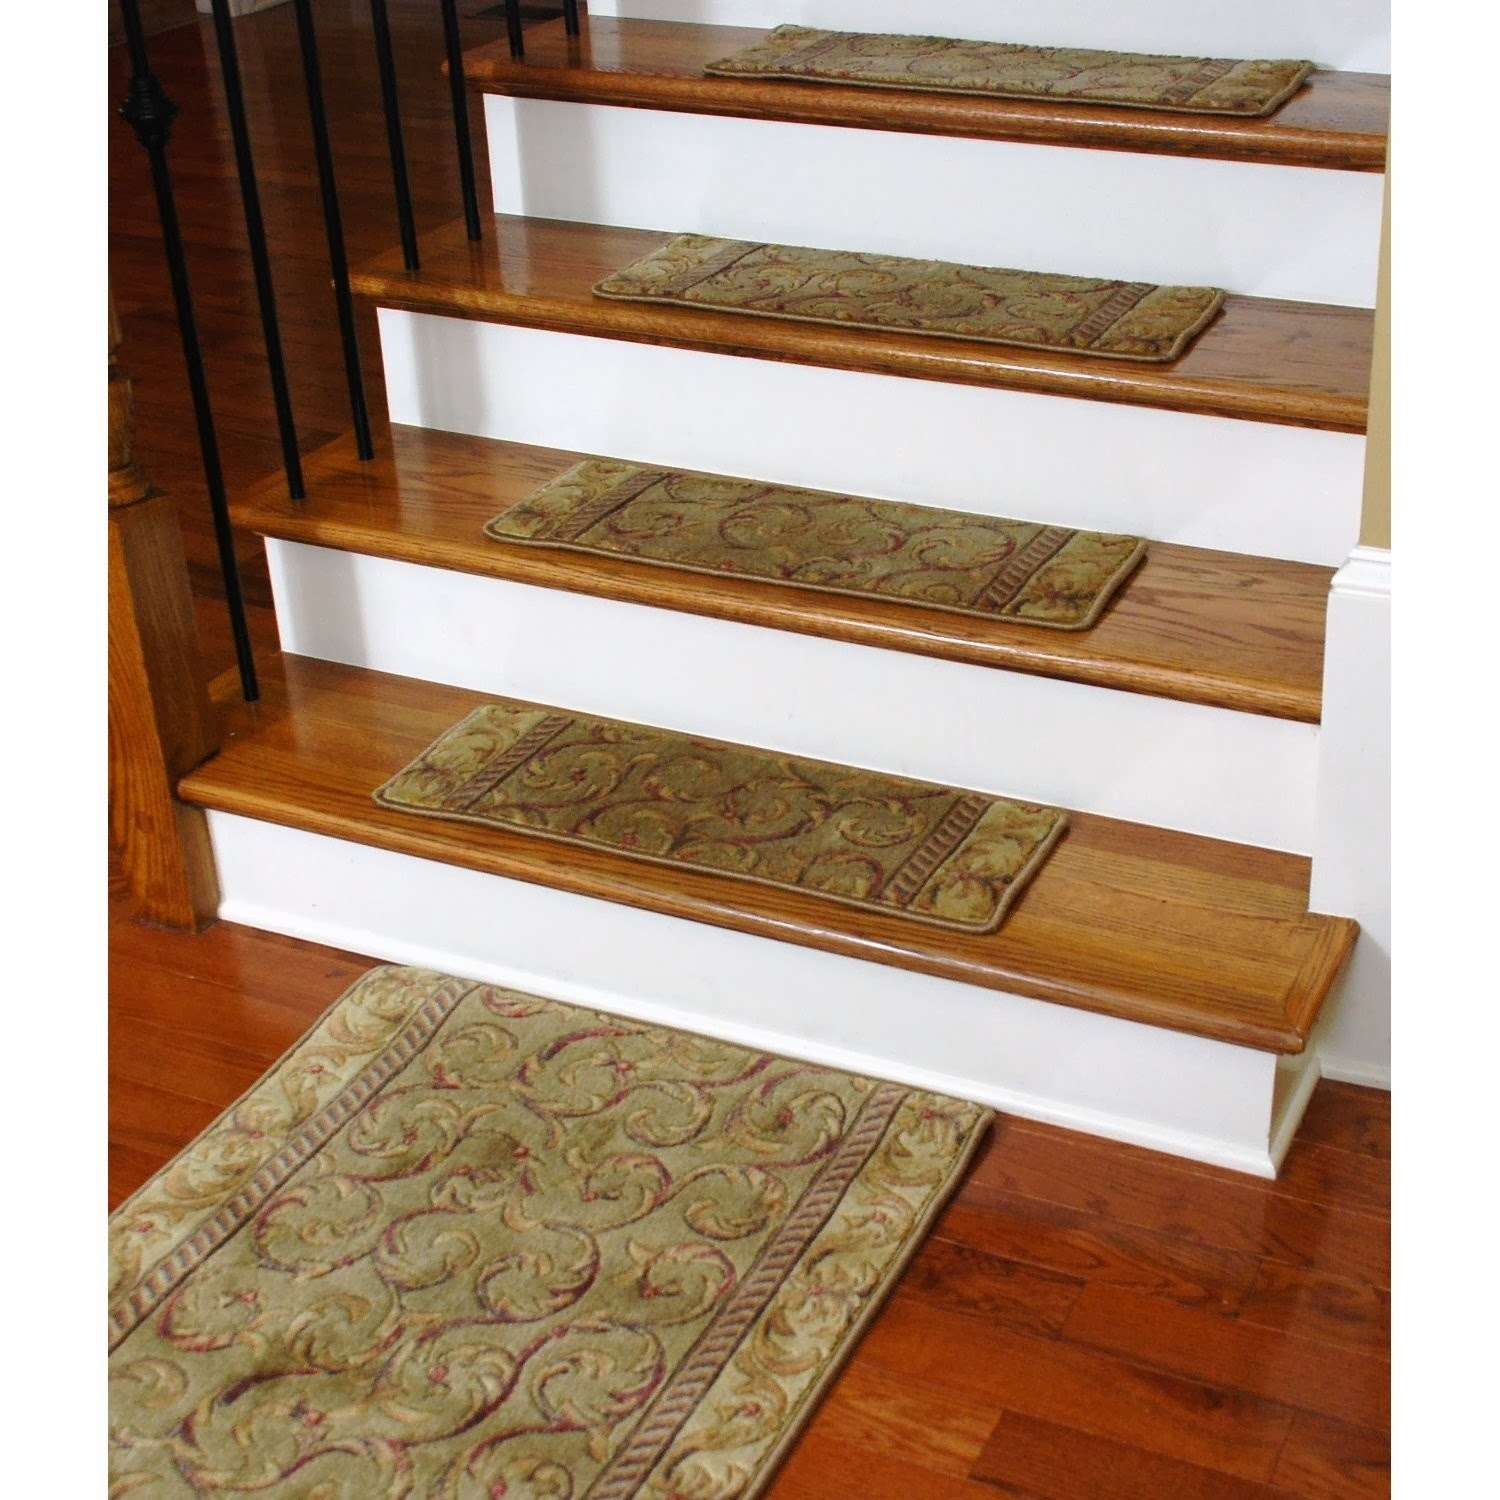 54 Stair Carpet Protectors Protector Carpets Inspirations Vinyl Pertaining To Stair Treads On Carpet (View 8 of 15)